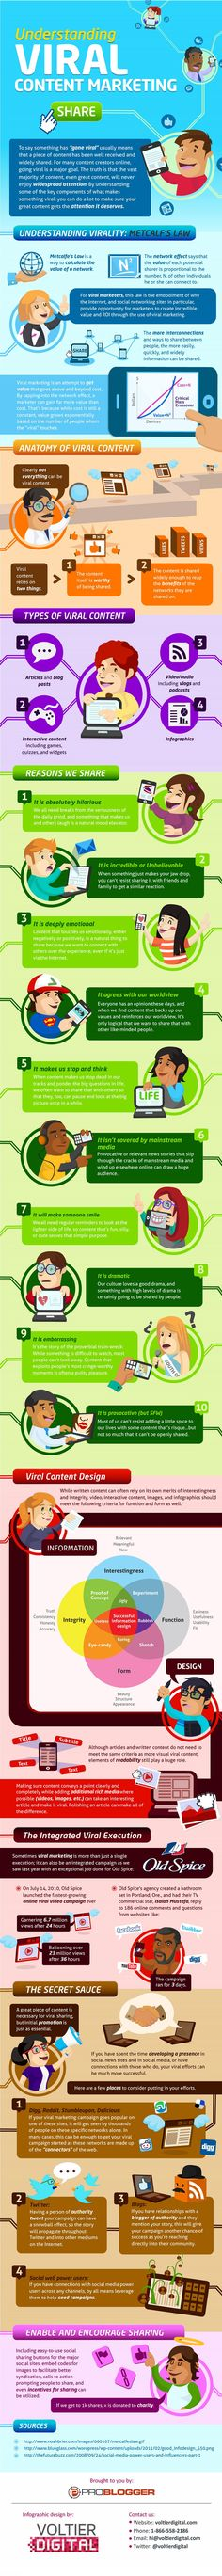 Best #Infographic to Understand and Curate #Viral #ContentMarketing